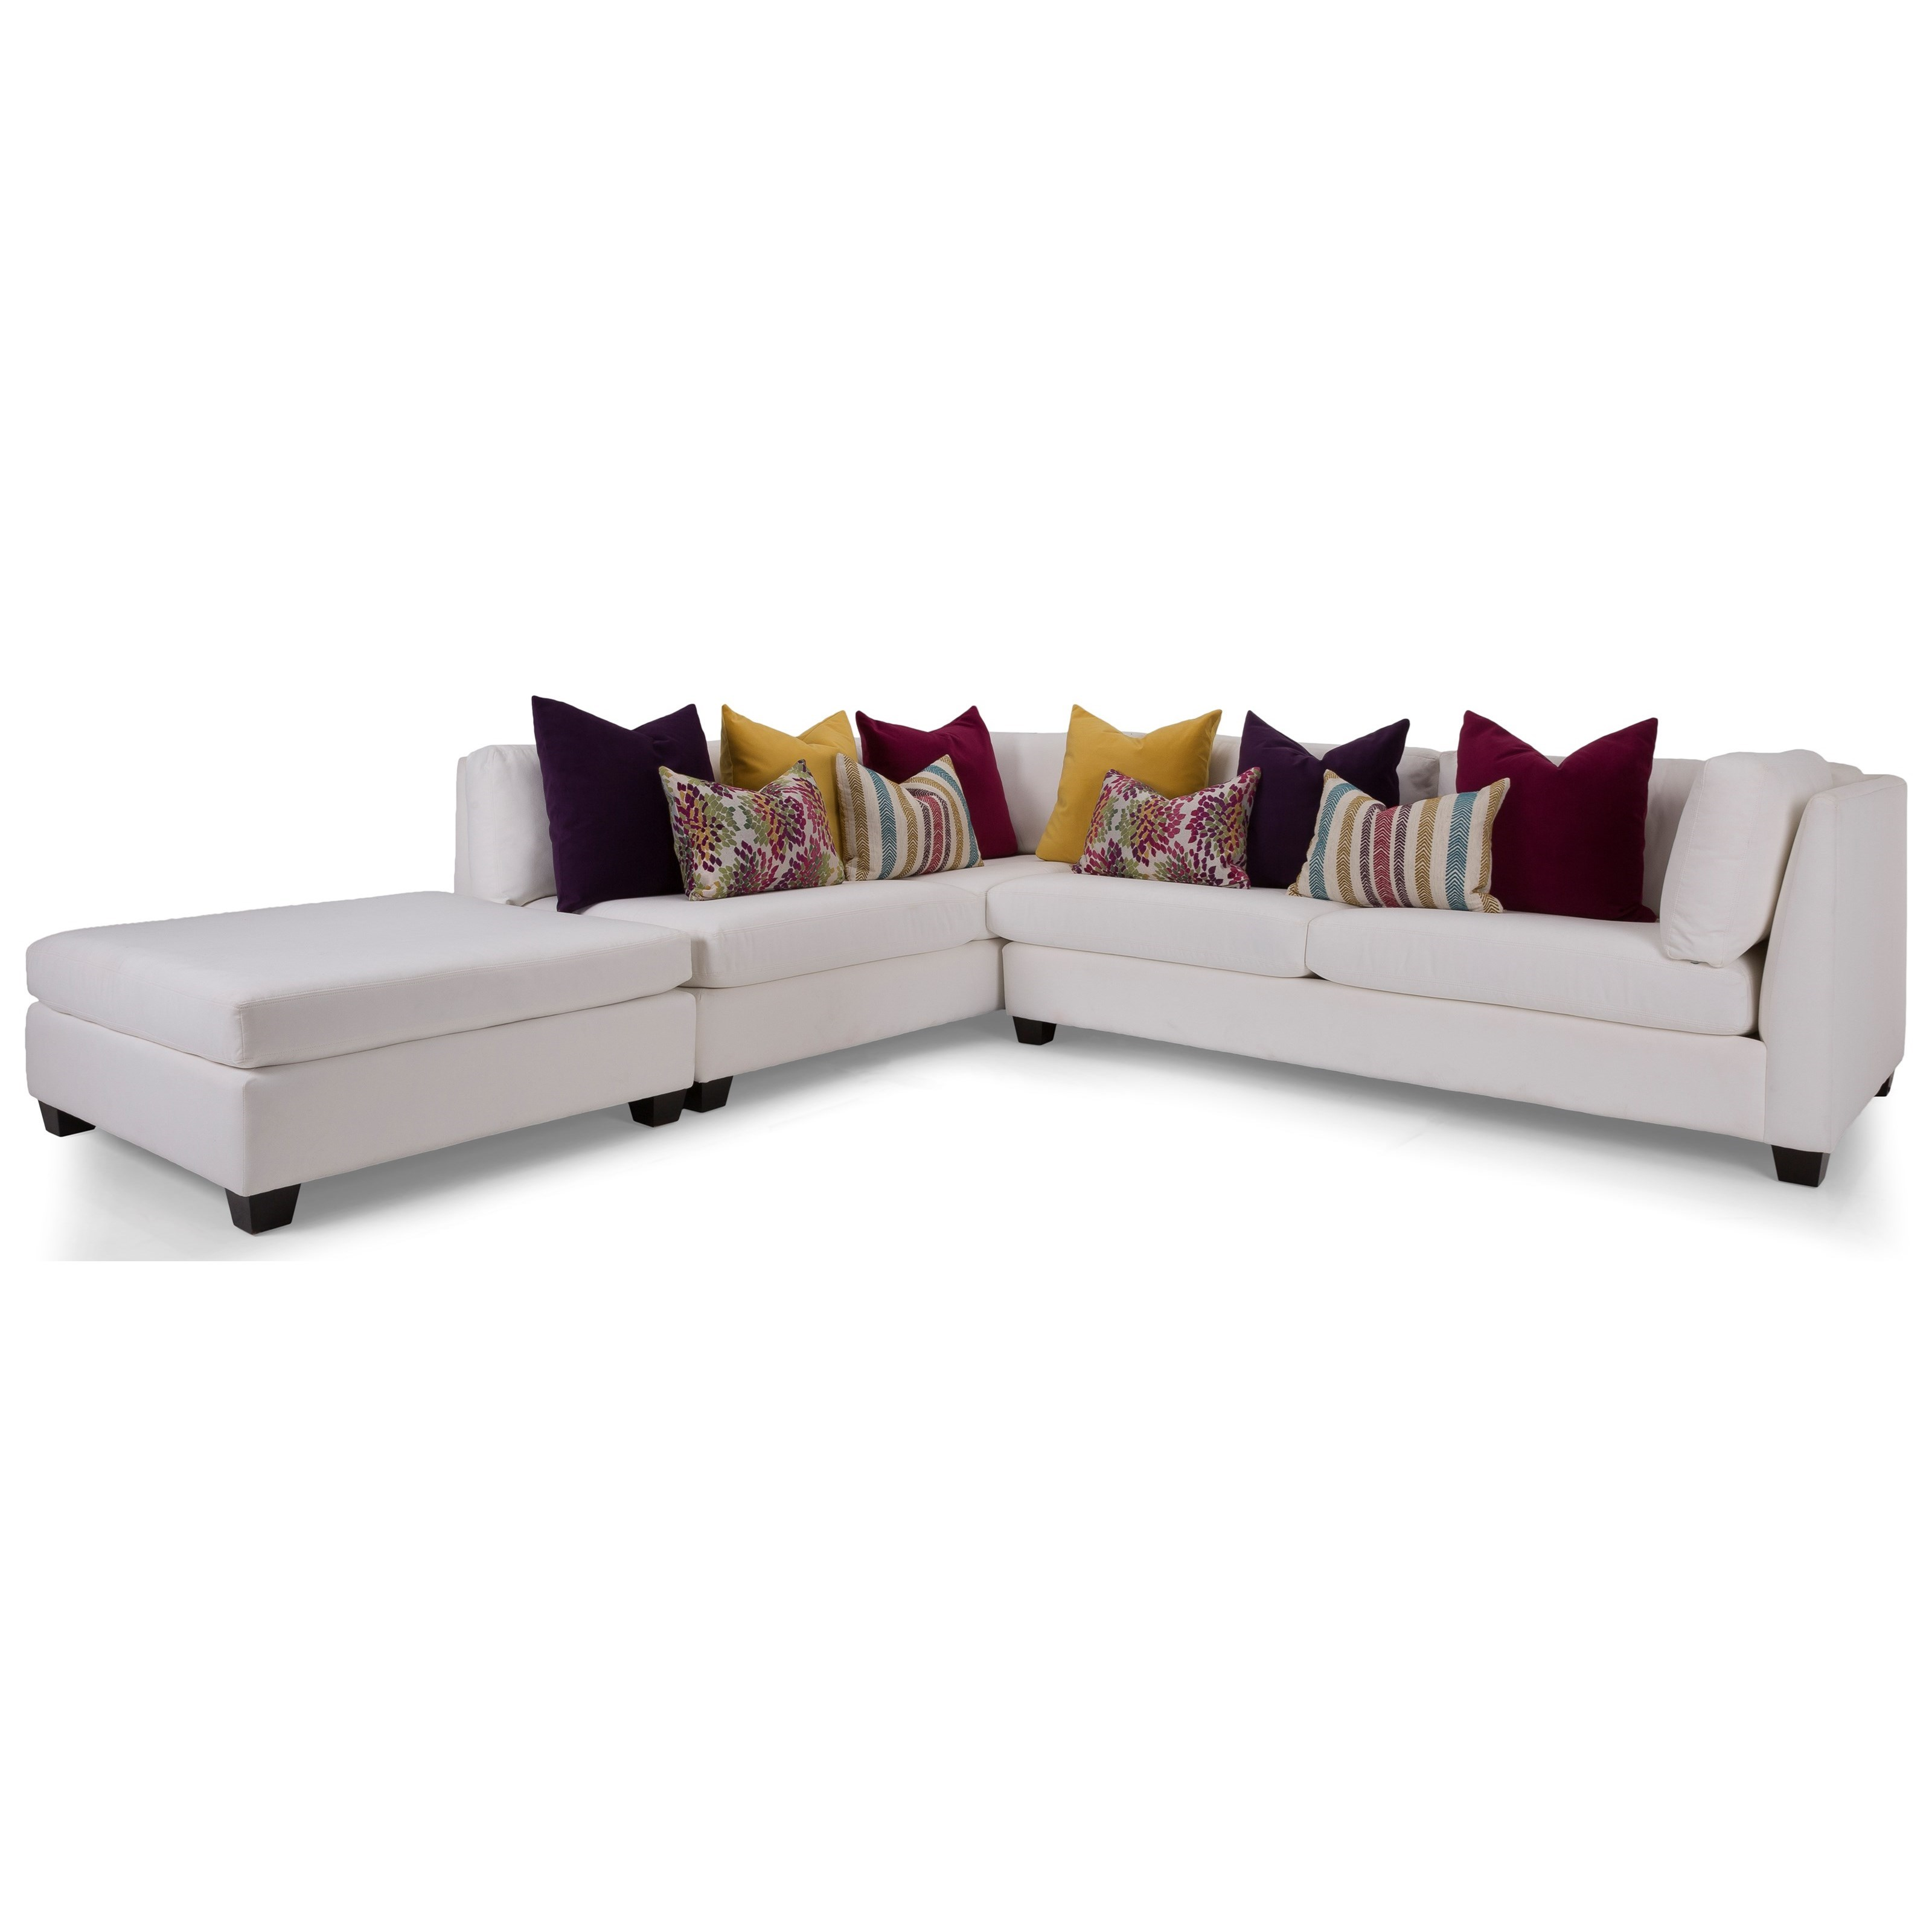 2875 Sectional Sofa by Decor-Rest at Rooms for Less